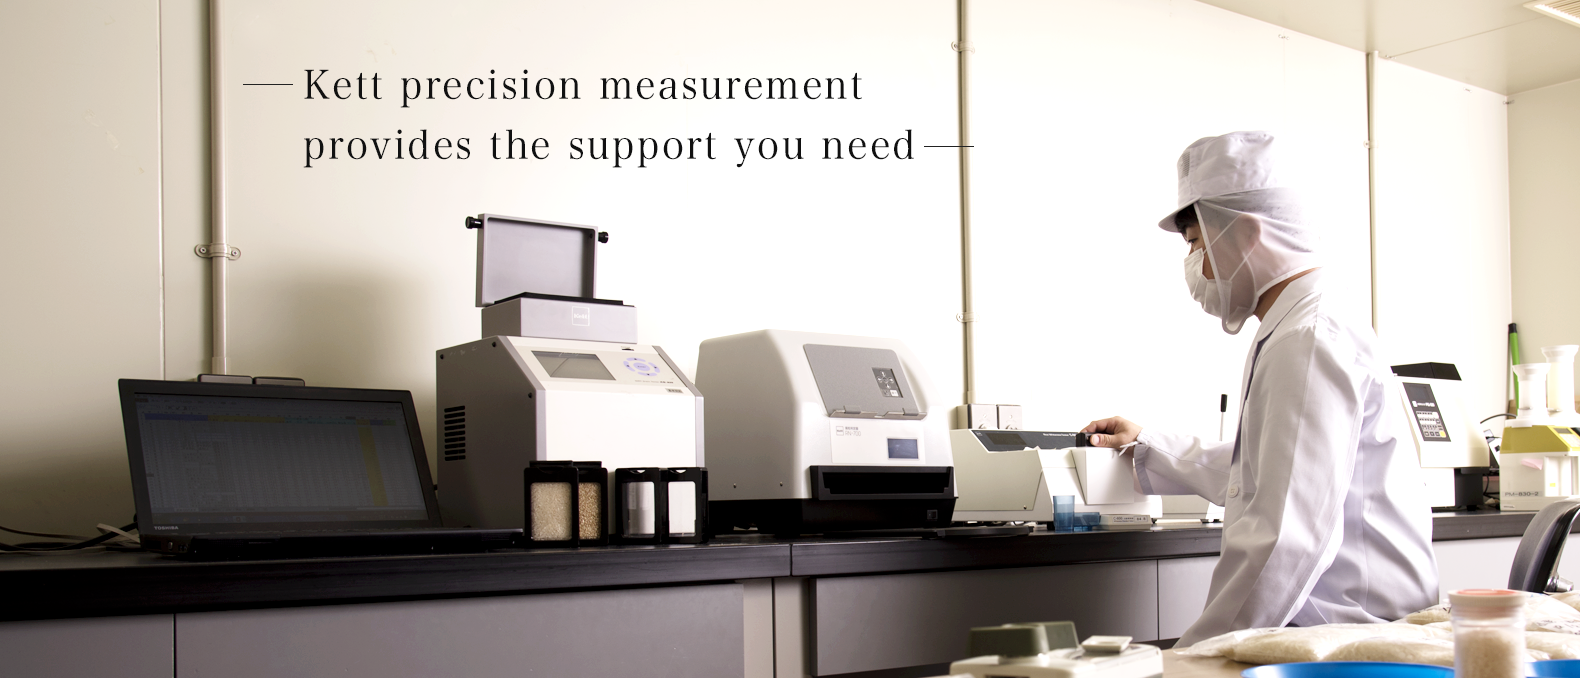 Kett precision measurement provides the support you need.